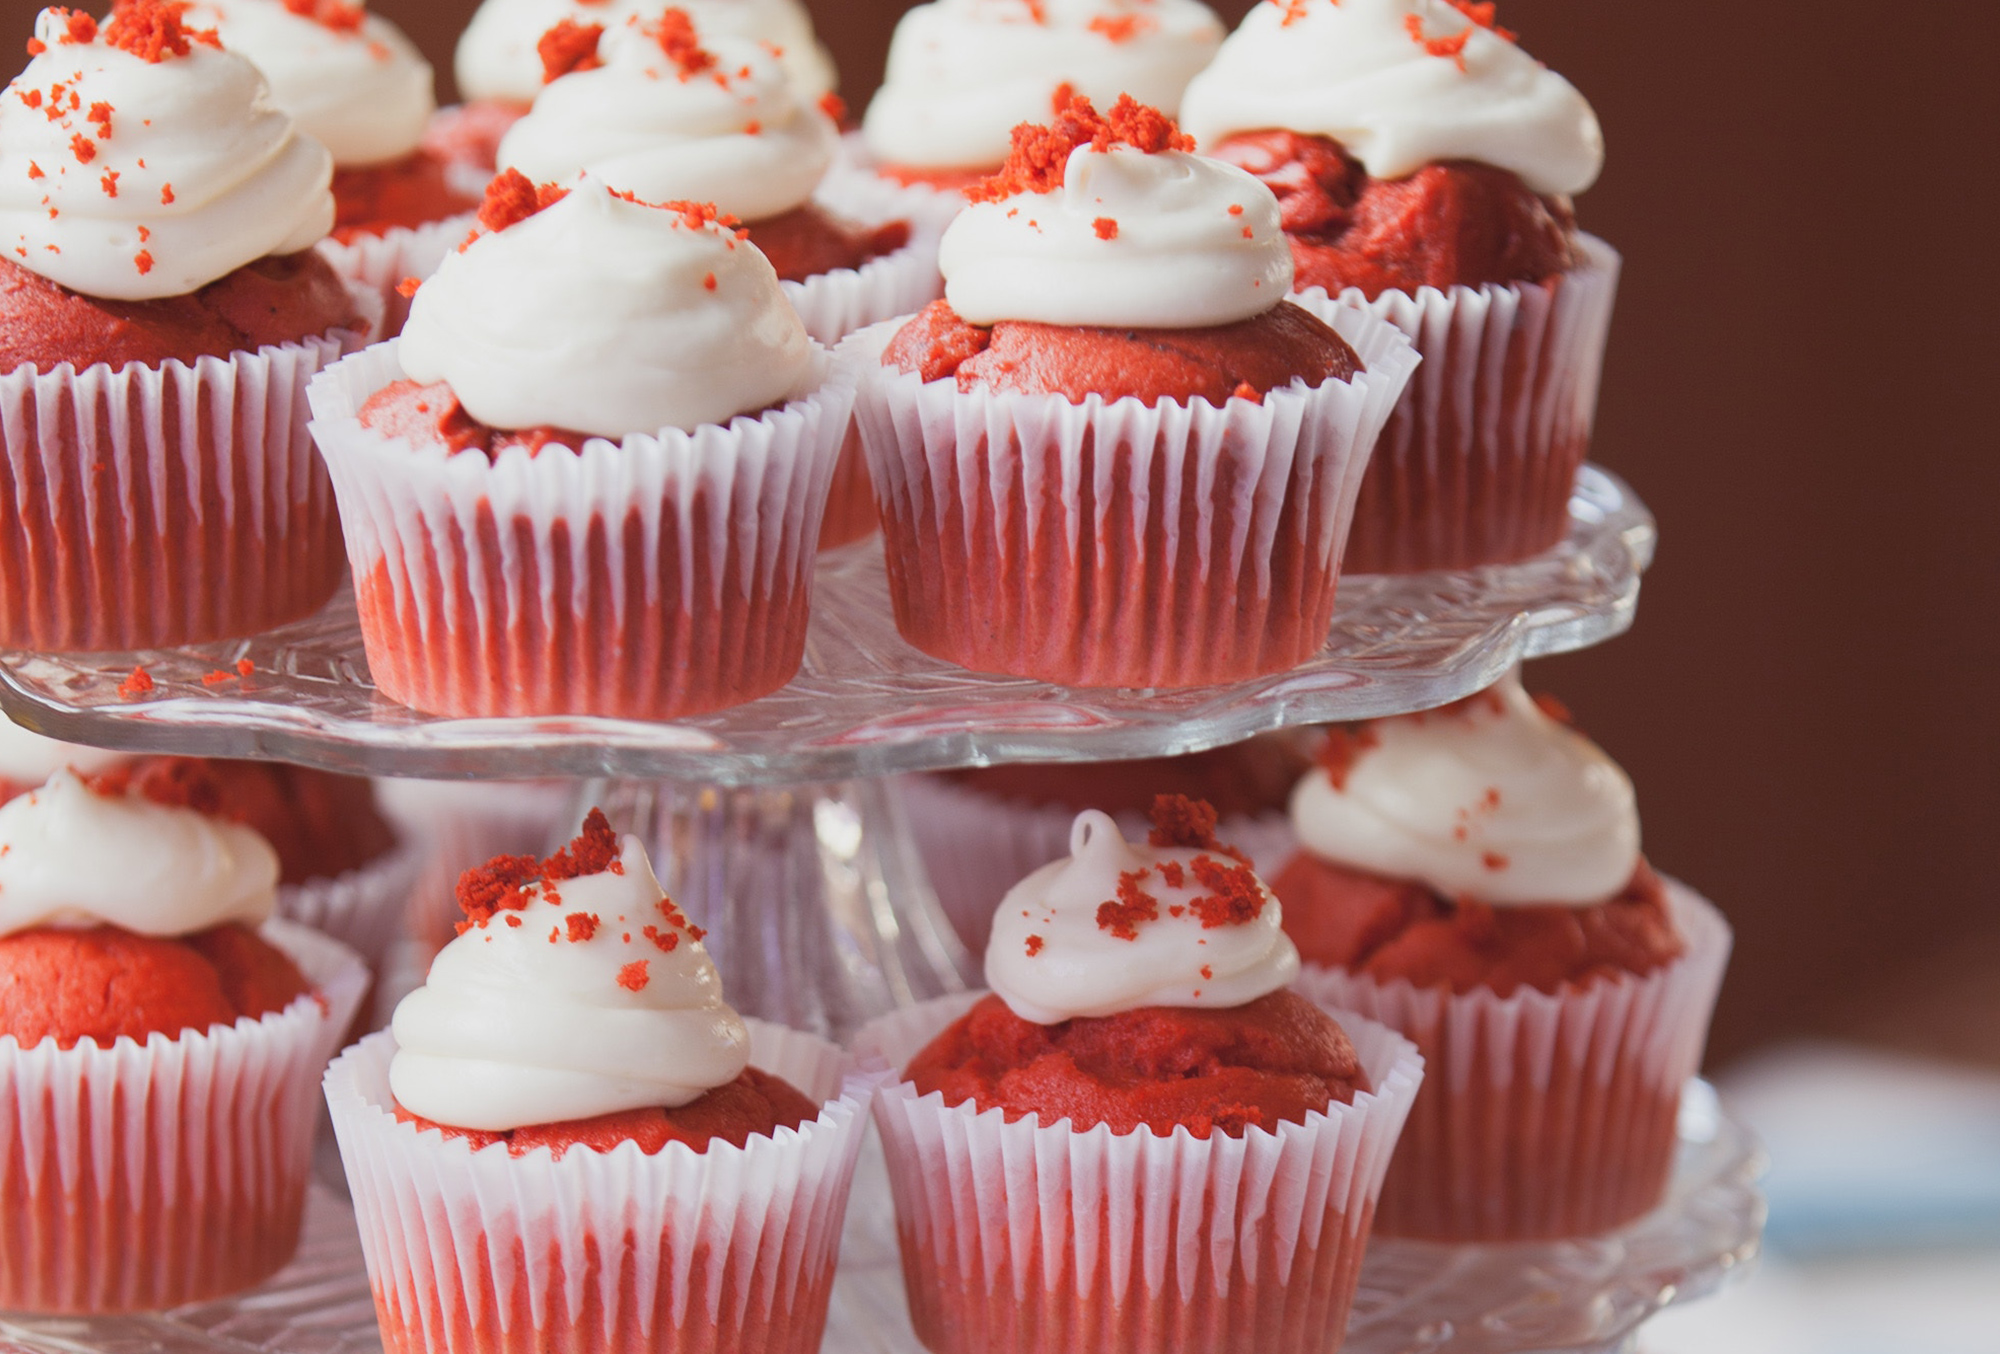 red velvet cupcakes a top a cupcake stand